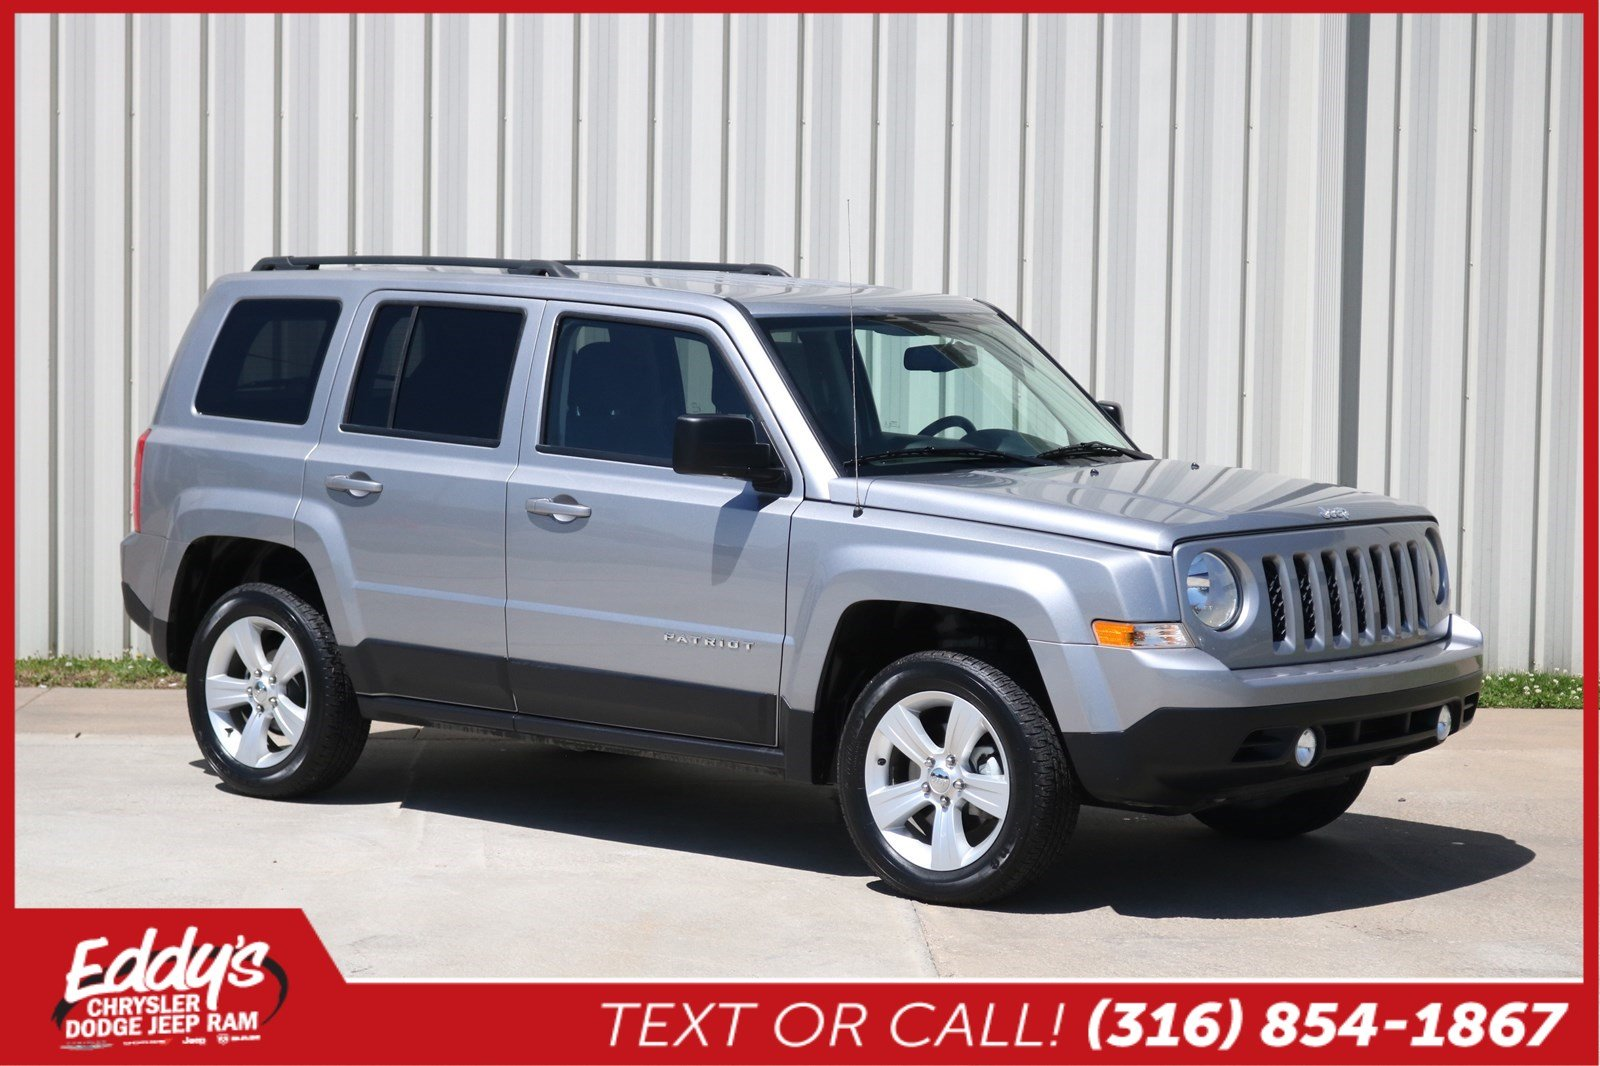 Certified PreOwned 2016 Jeep Patriot Latitude 4x4 SUV in Wichita